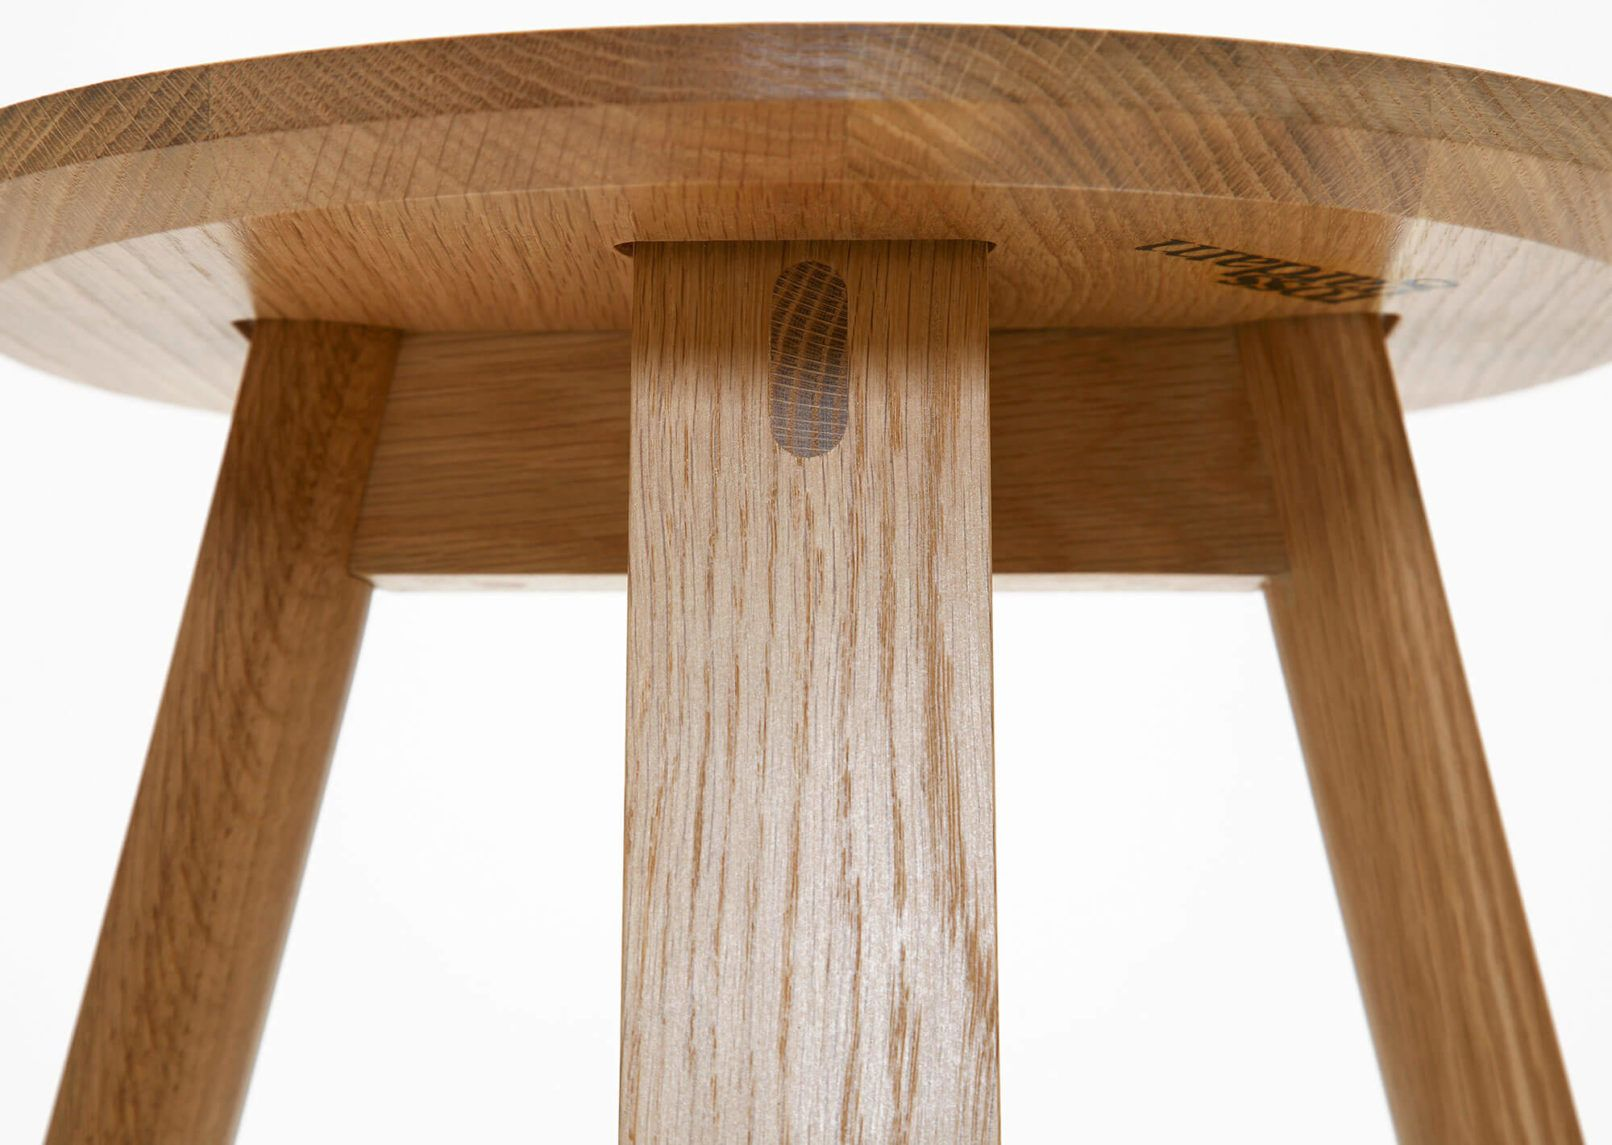 Marvelous Half Full Stool Chairs Stools Stool Furniture Pabps2019 Chair Design Images Pabps2019Com